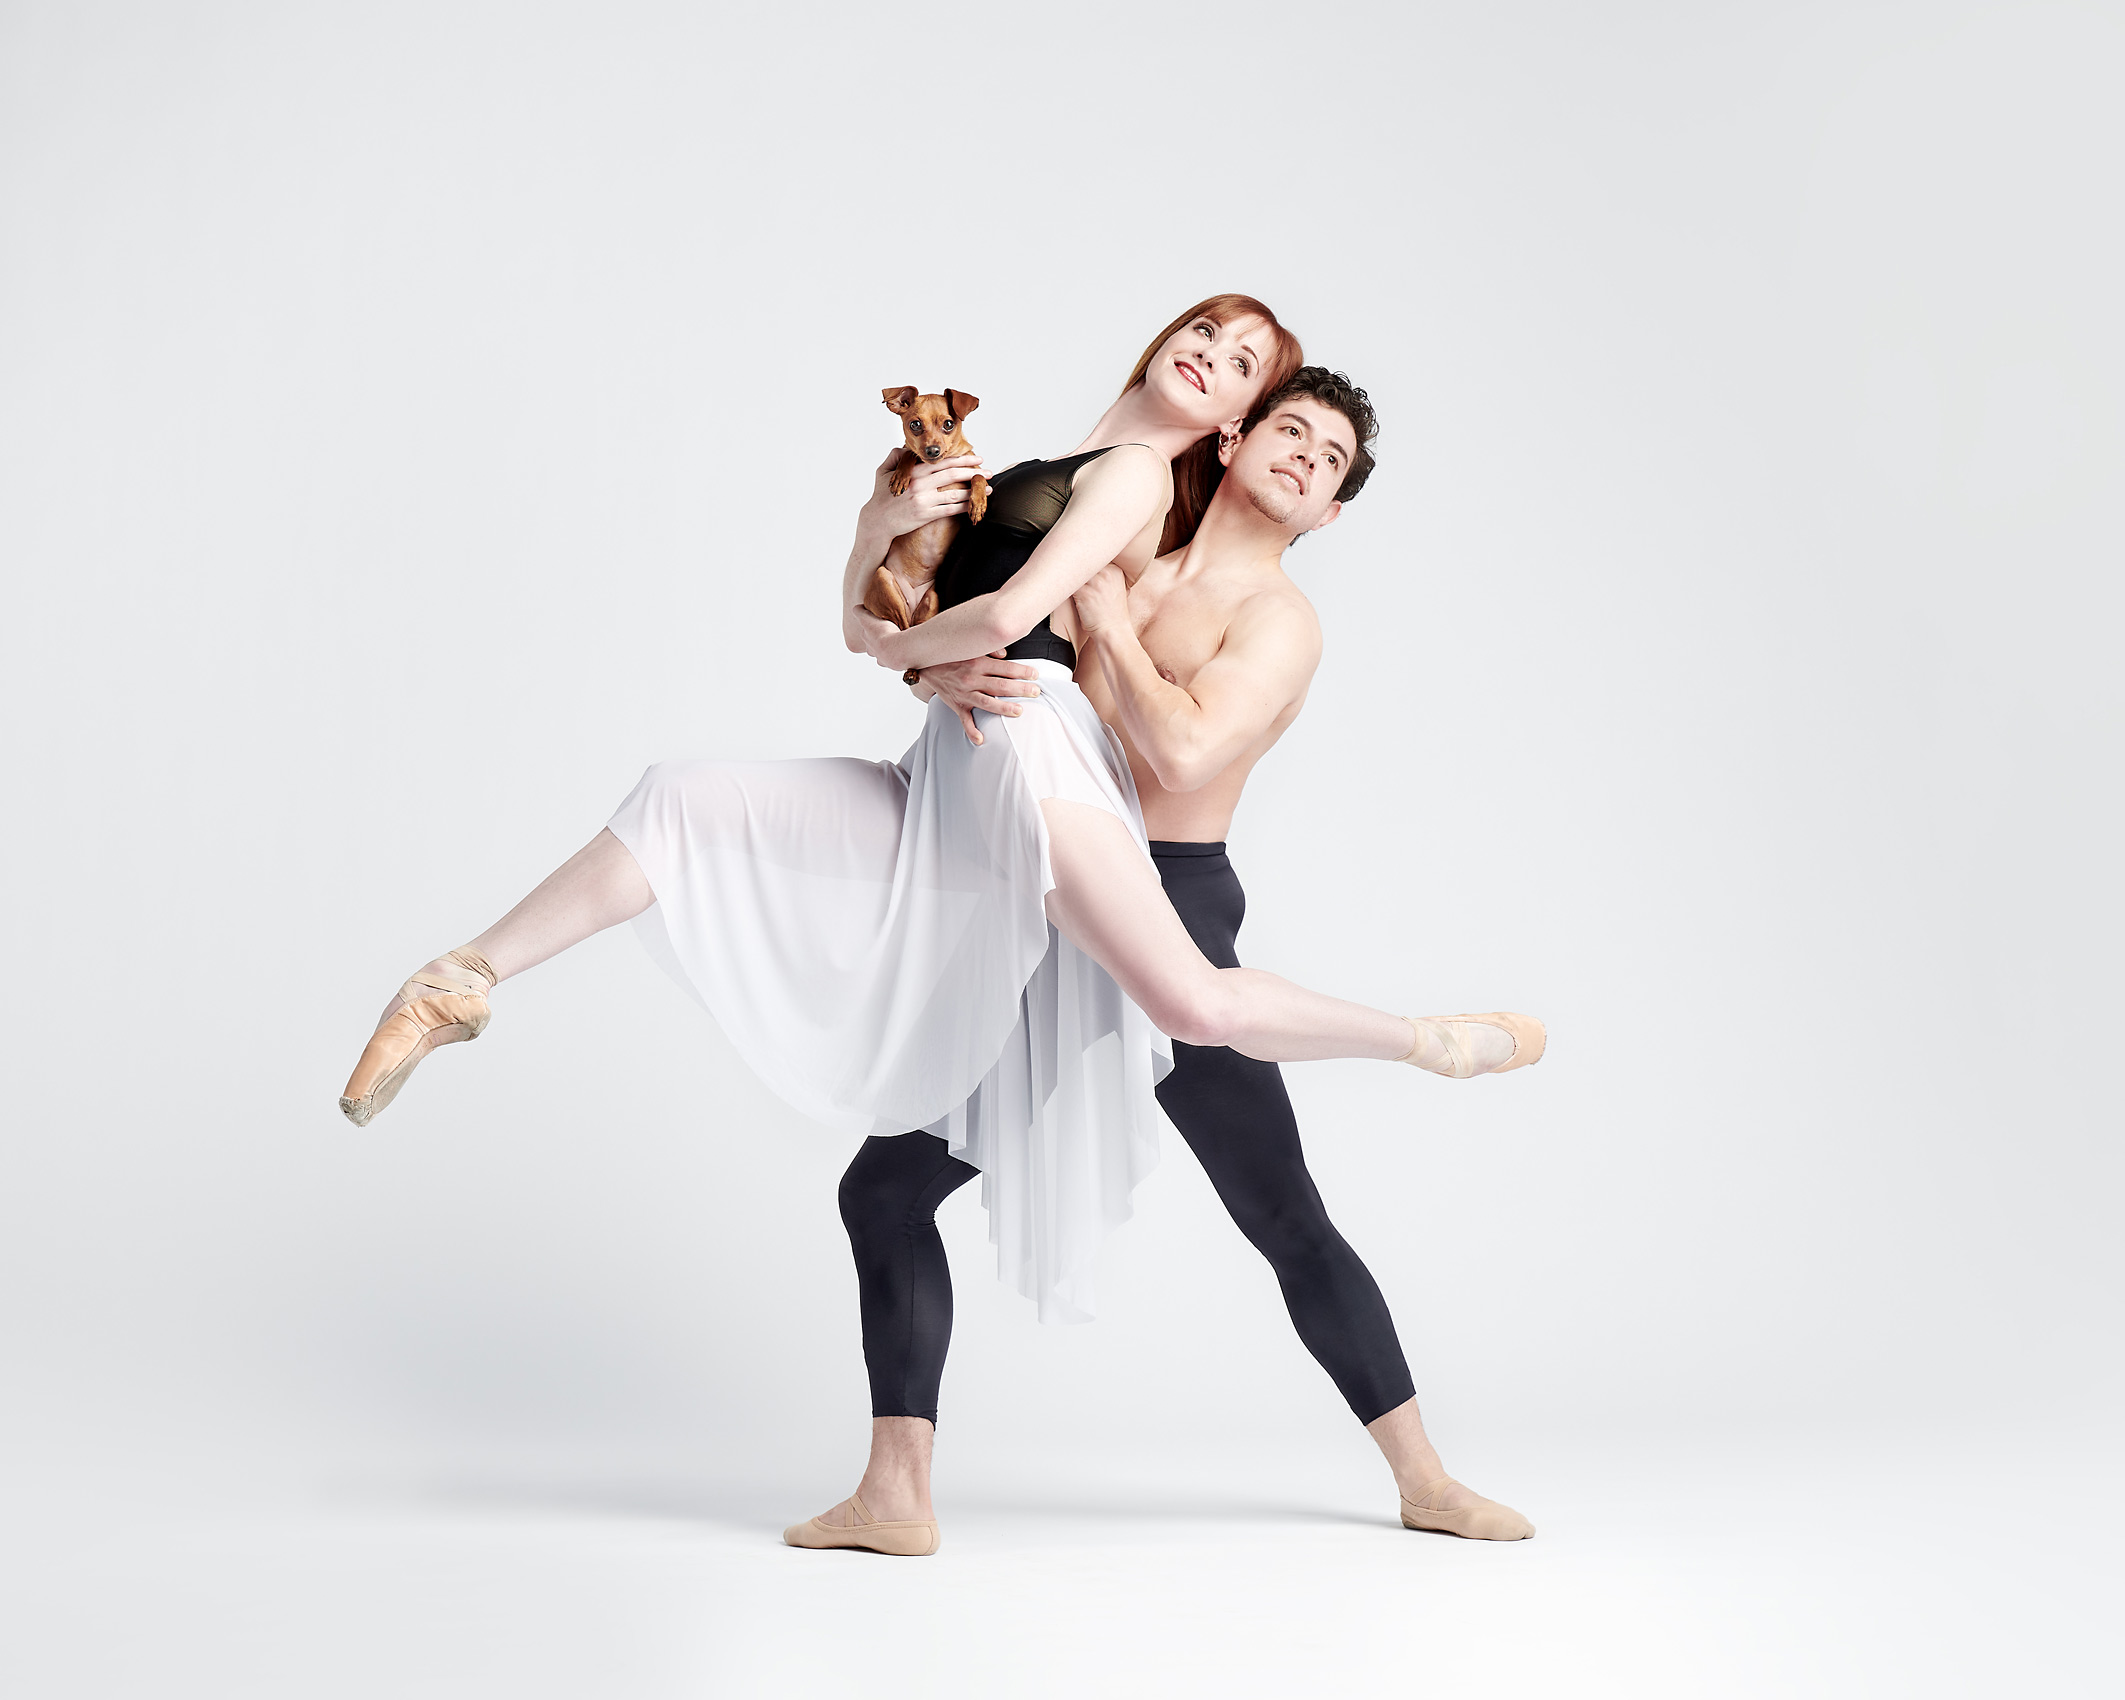 2019-05-13-DD-Colorado-Ballet2263-copy